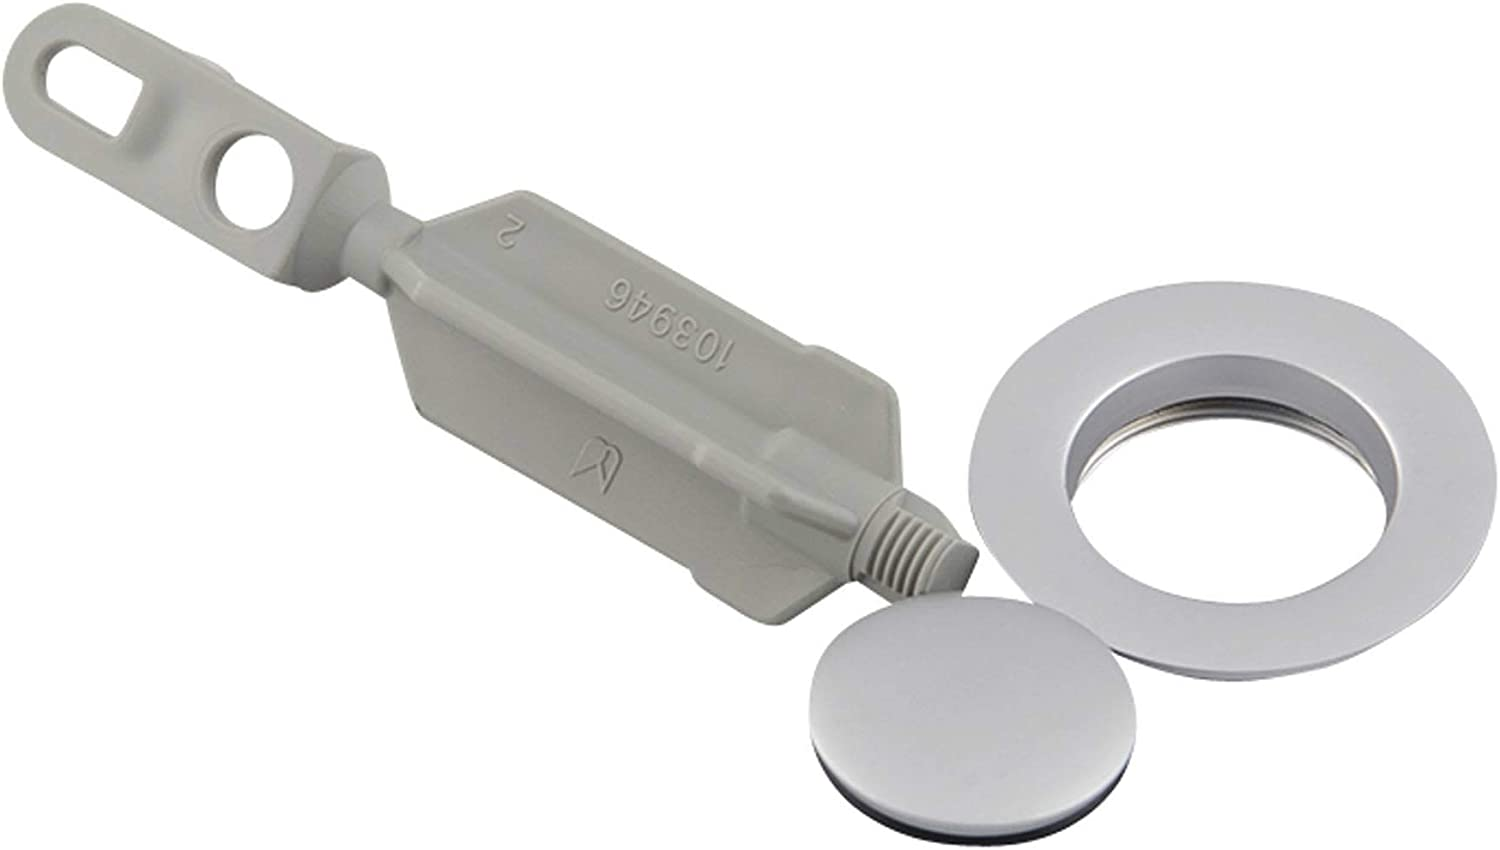 Moen 10709PM Collection Many popular brands Replacement Bathroom Plug and Sink Drain Cheap mail order specialty store